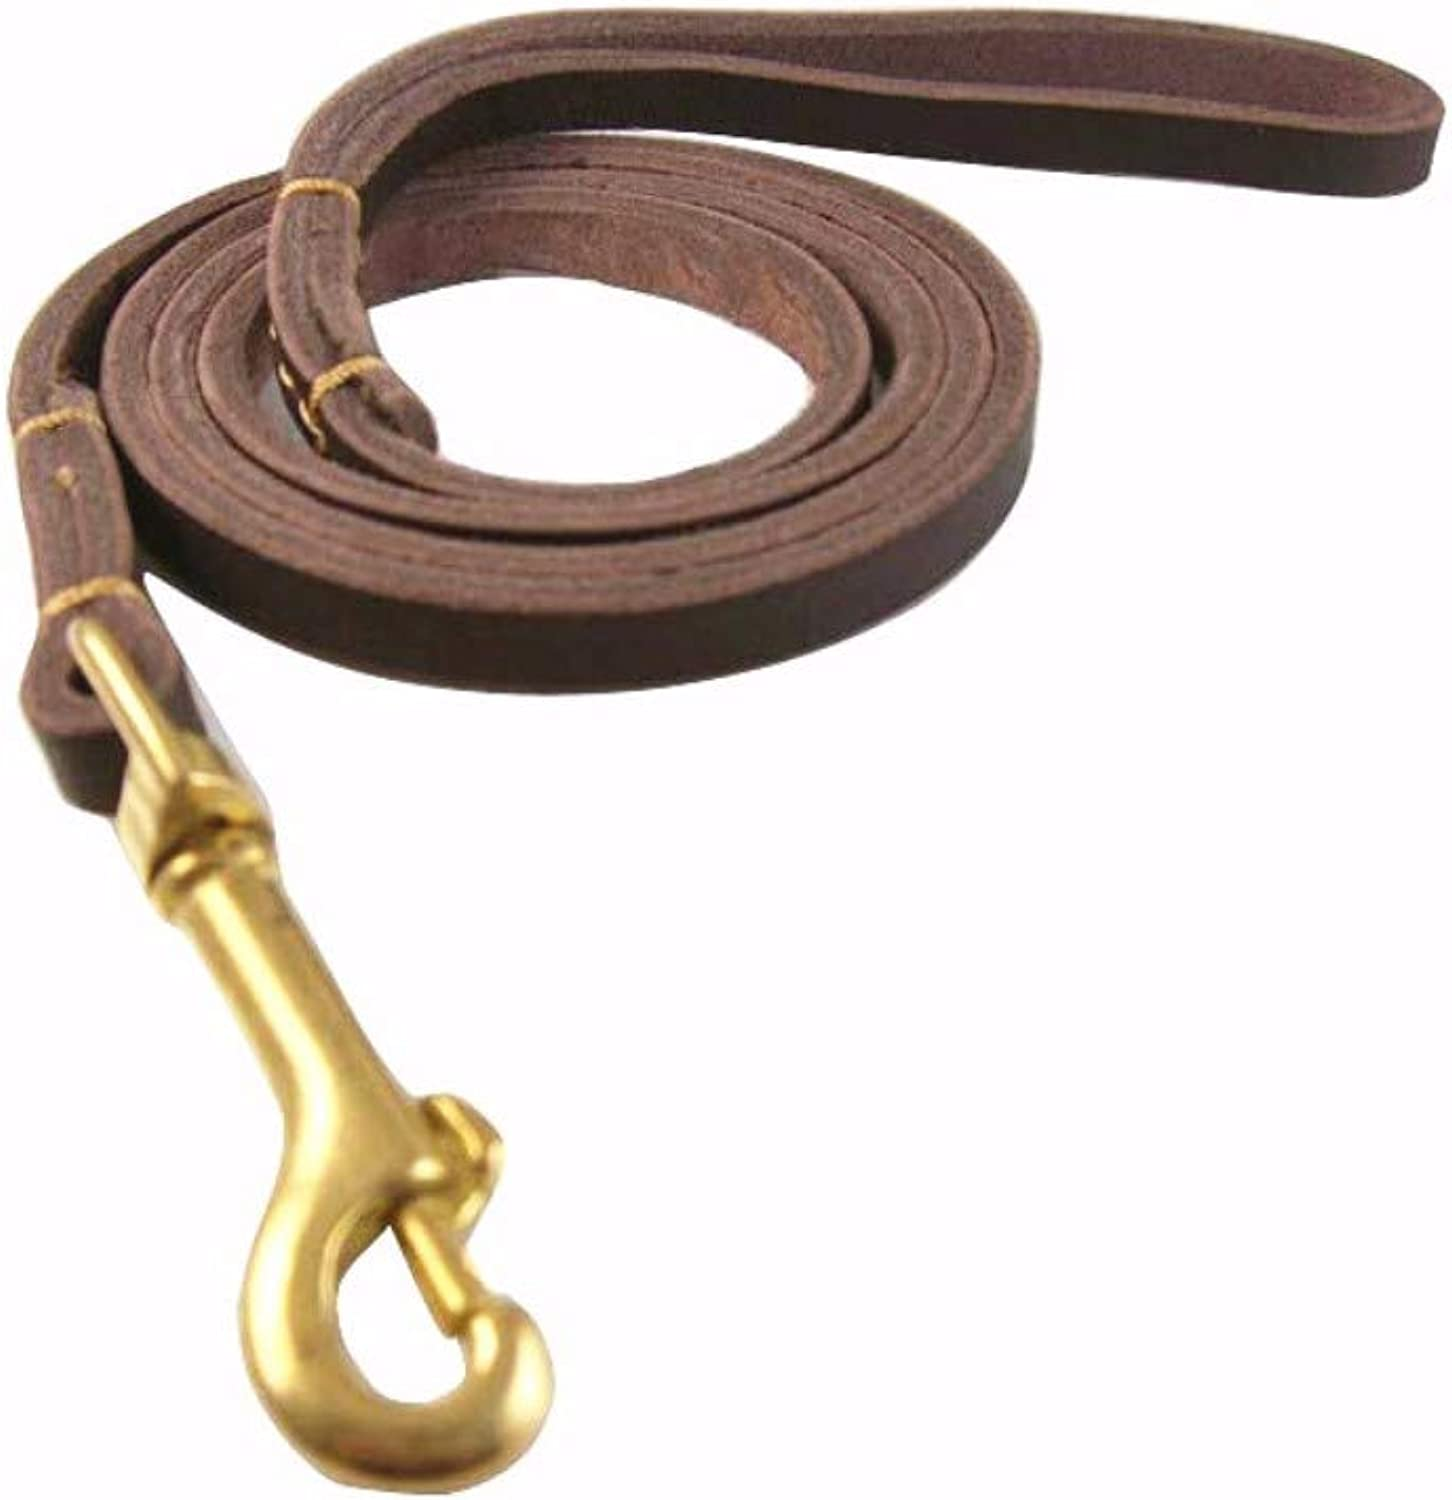 Hhxx9 Pet Supplies Top Layer Soft Small and Medium Dog Chain Teddy VIP Dog Rope Leather Pet,Brown